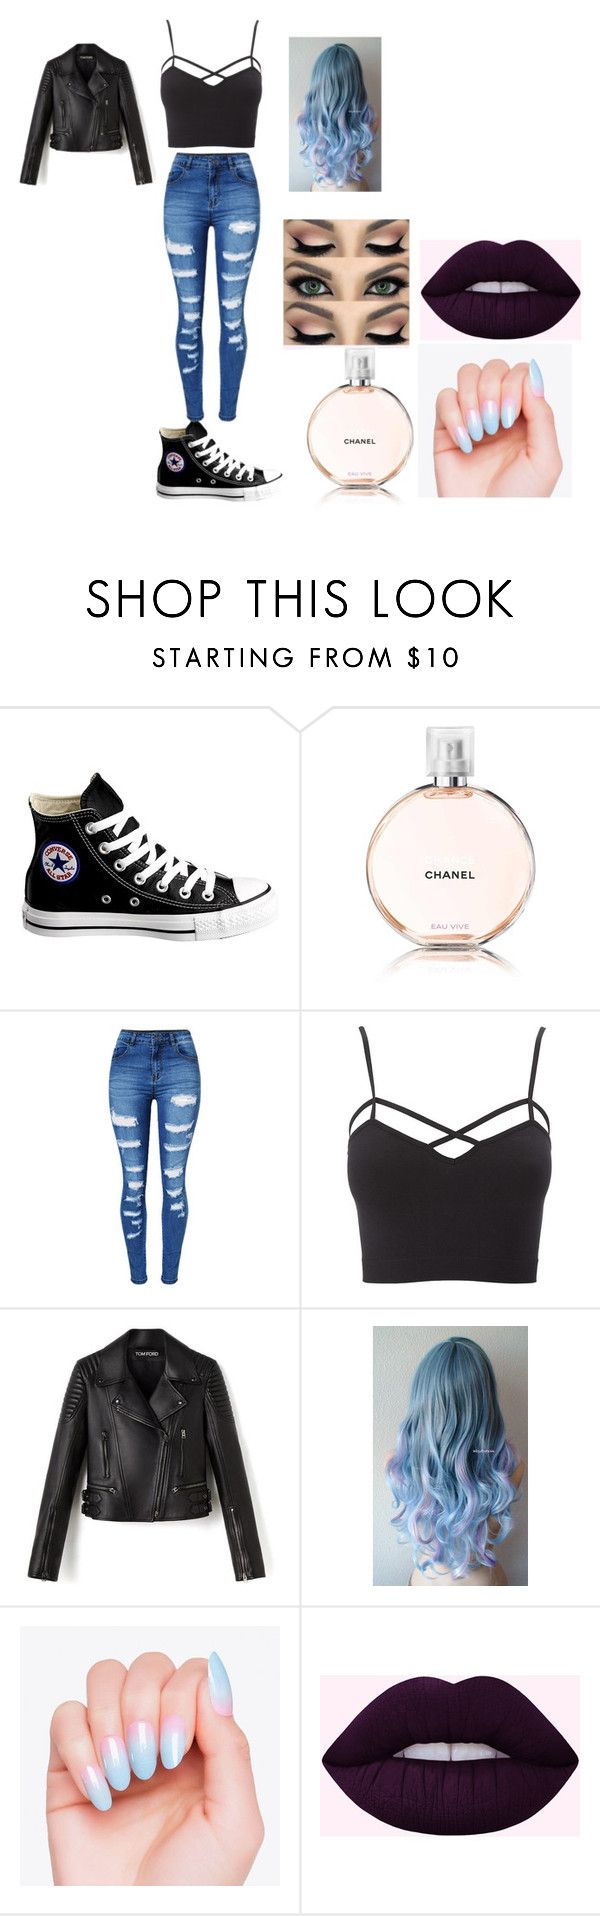 """""""Sin título #5"""" by taniahernandez-2 on Polyvore featuring moda, Converse, Chanel, WithChic, Charlotte Russe y plus size clothing"""